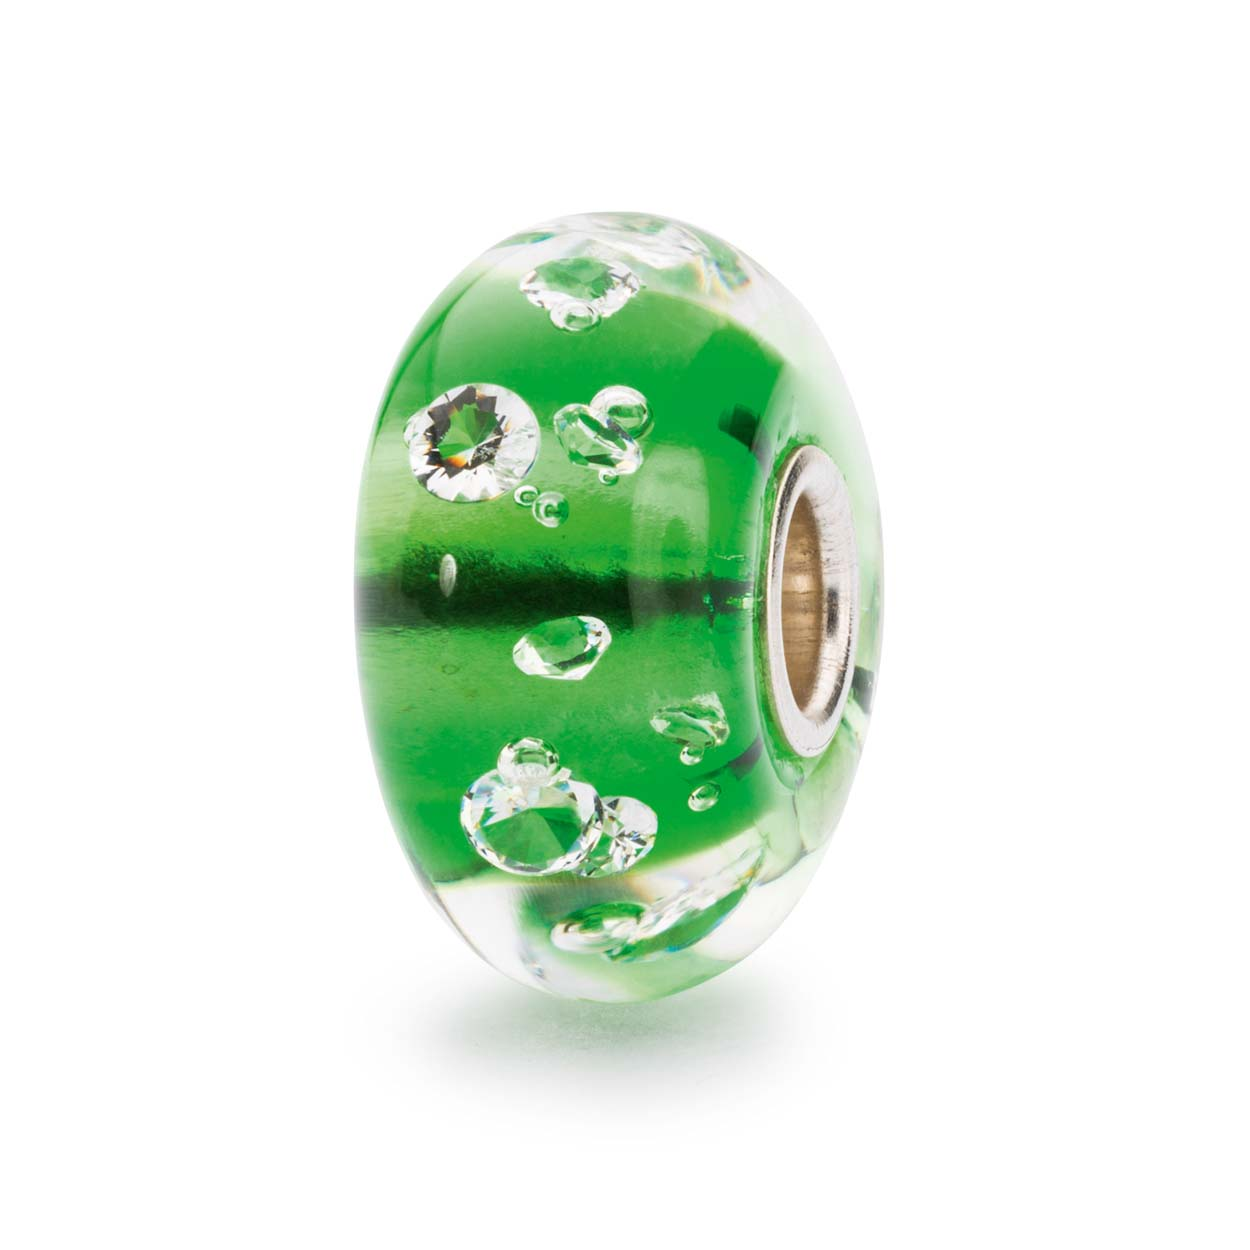 TGLBE-00075 The Diamond Bead Emerald Green a